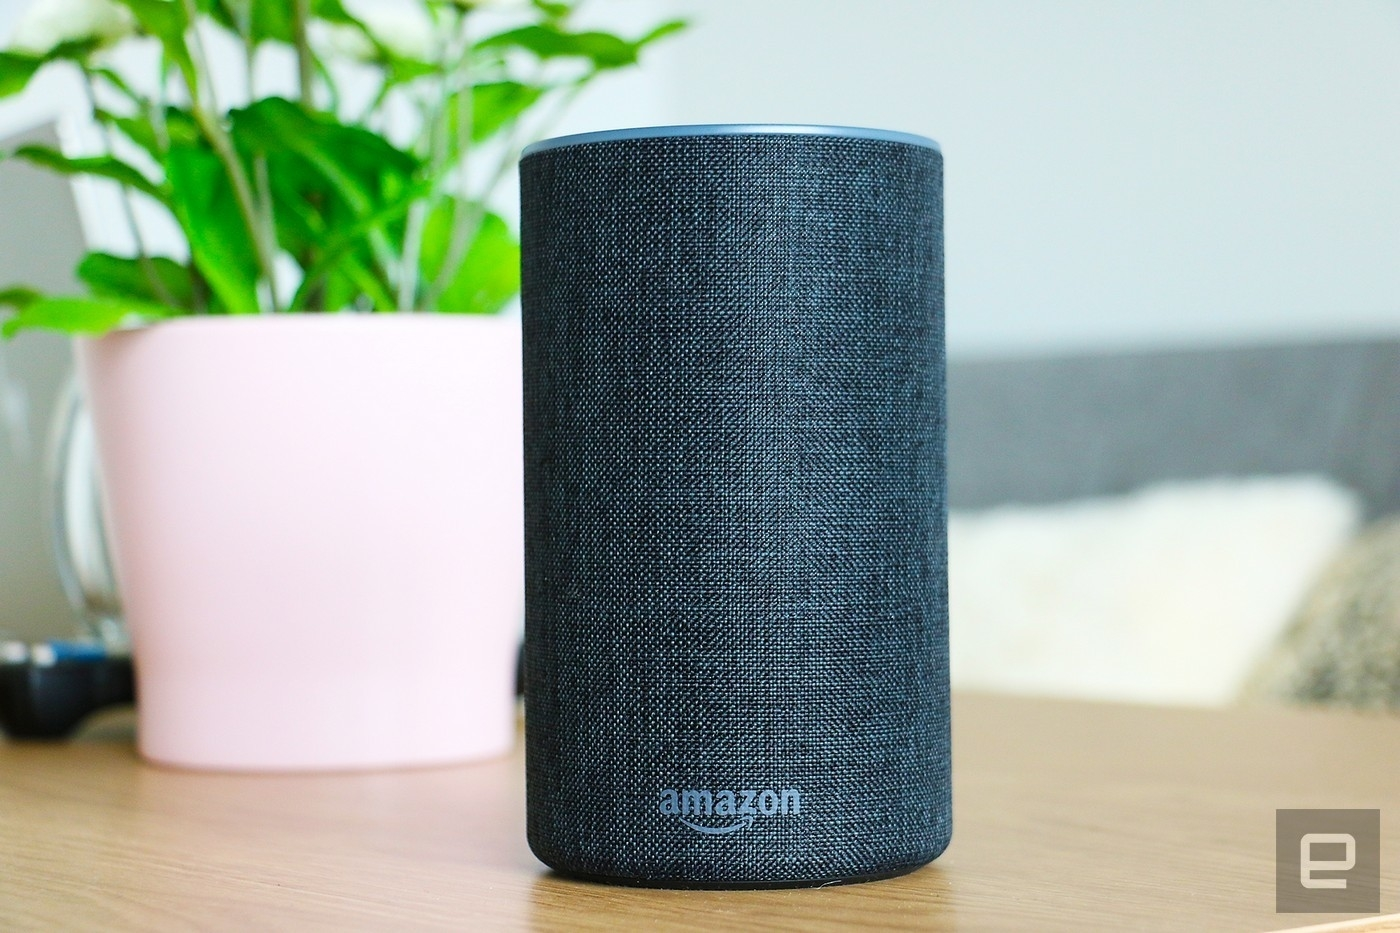 Amazon offers free sound effects to Alexa skill creators | DeviceDaily.com